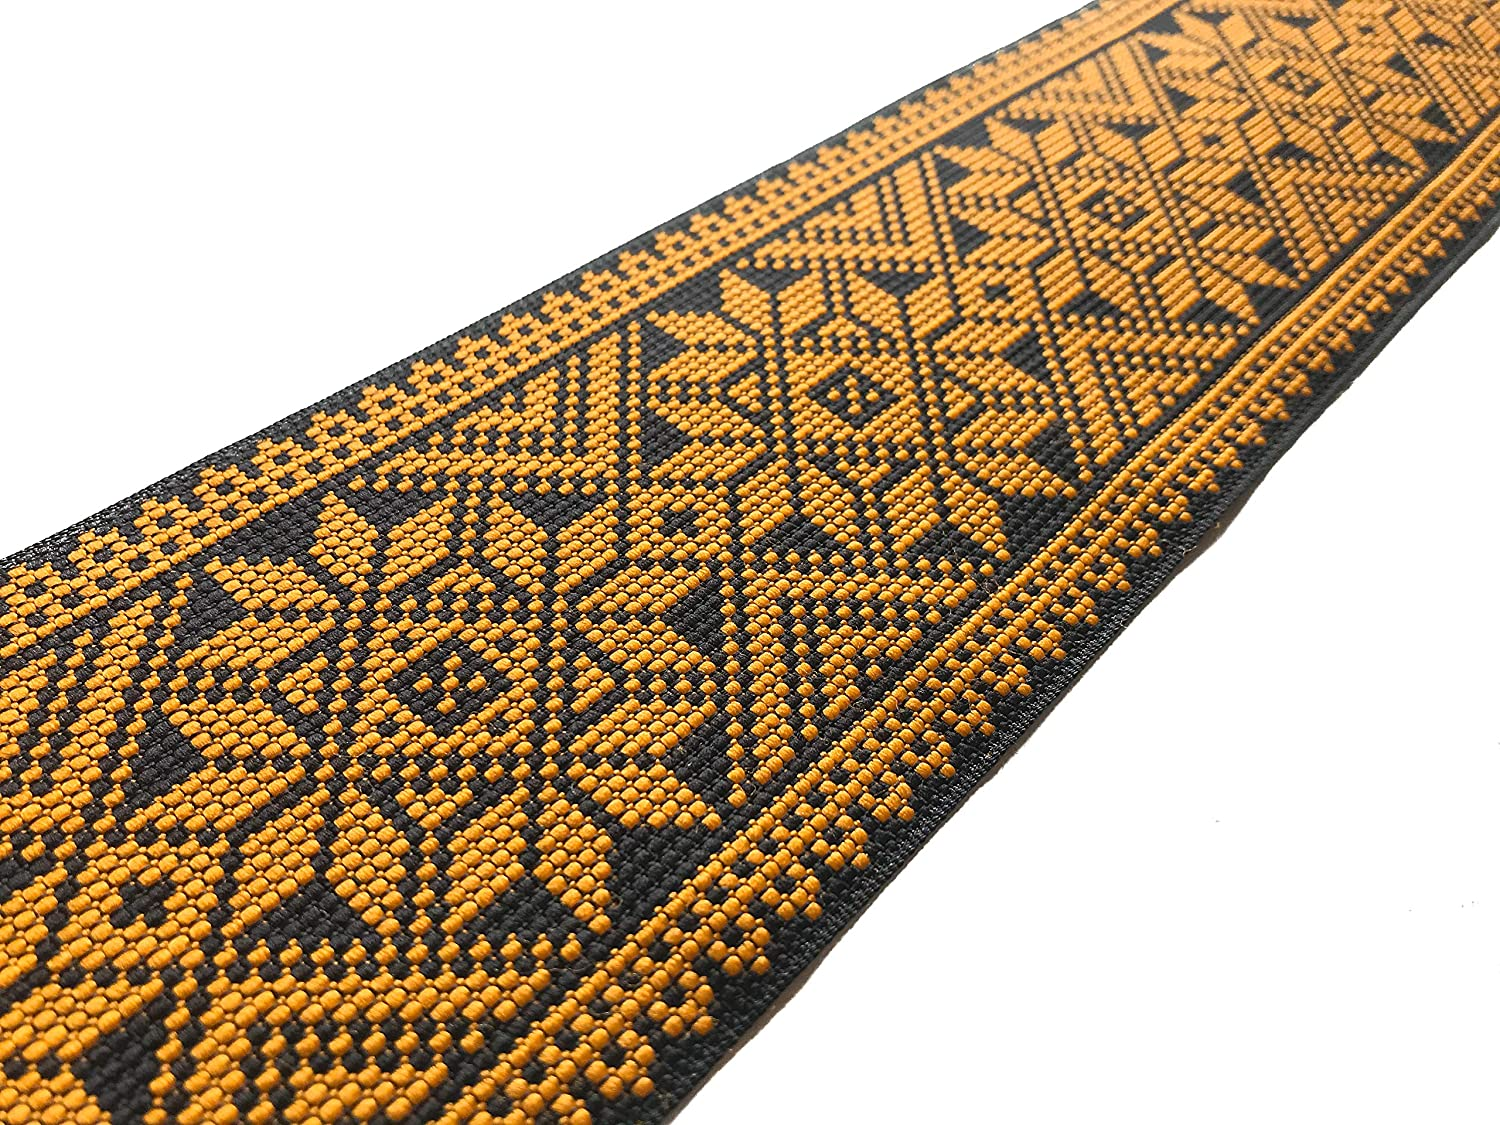 Indian Jacquard Brocade Trim in Yellow Cross Stitch Style Geometric Pattern for Sewing and Crafts 3 Yards by Craftbot